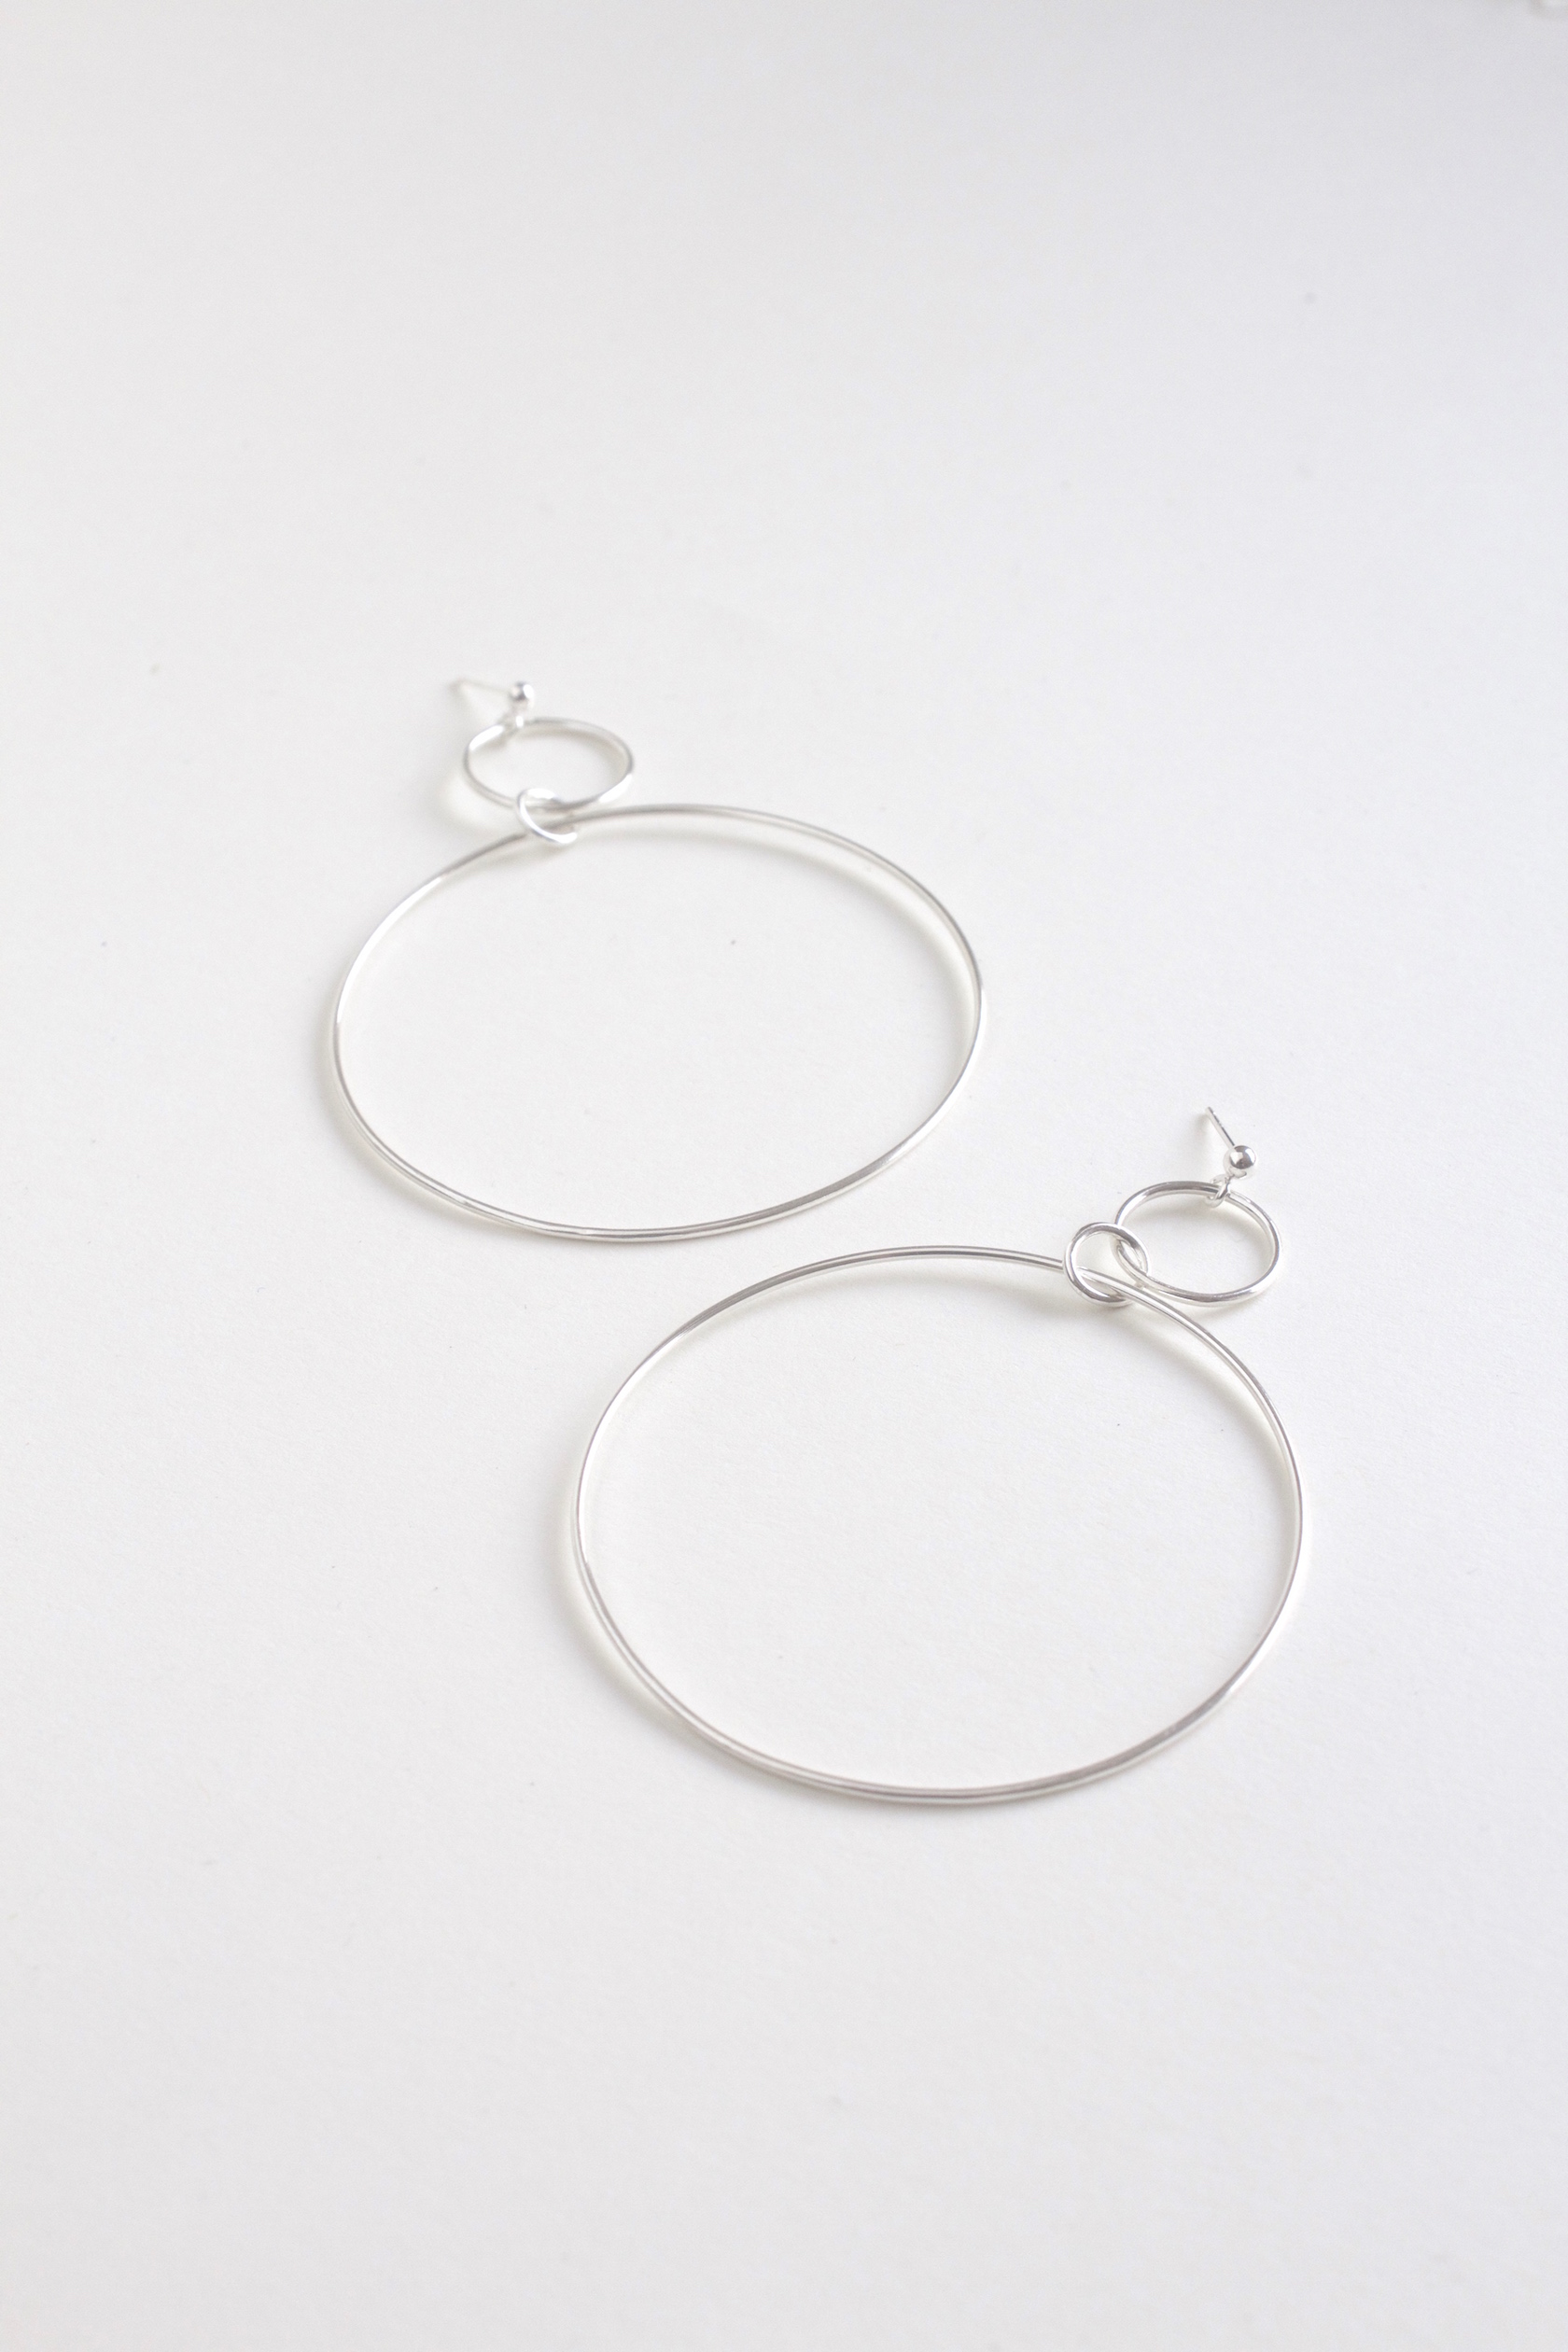 The quintessentialround hoop earring. An elegantaddition to daily living that never goes out of style.   - Material: Availlable in Brass or Sterling Silver  - Solid sterling silver ear postsand butterflys  - Approx. 4cm diameter  - Available in Rose Gold plate version